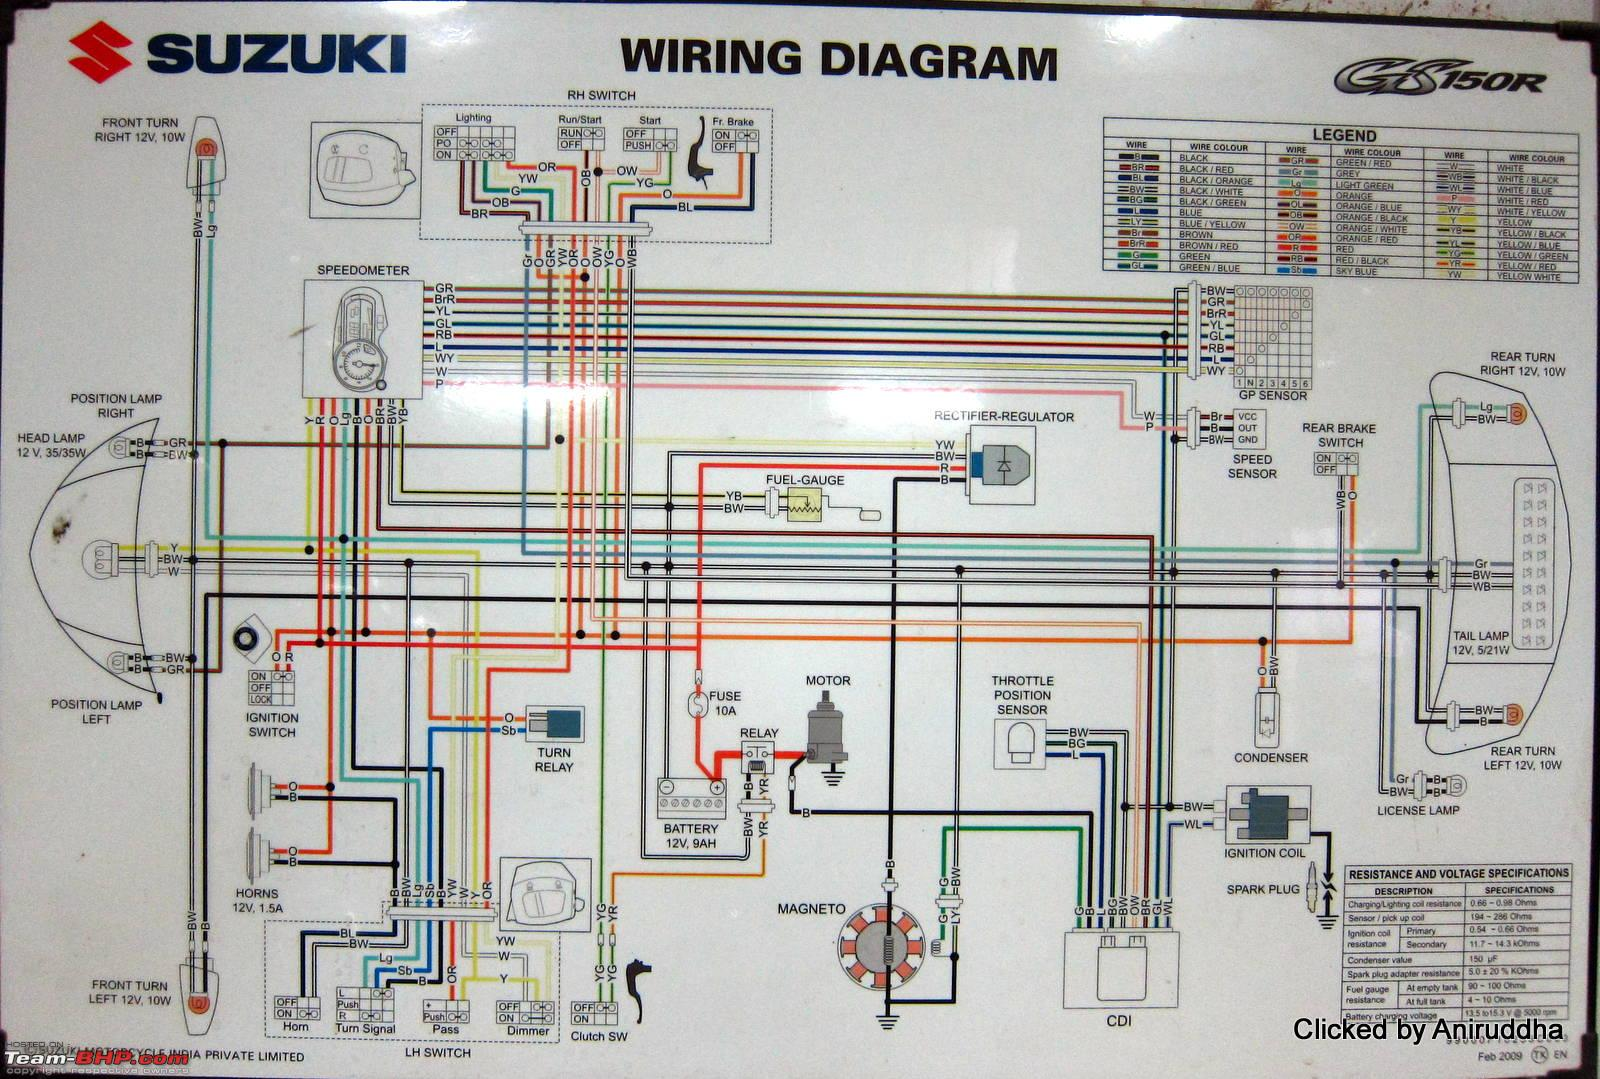 Indian Dirt Bike Wiring Diagram Not Lossing Ssr 125 Pit 125cc Motorcycle Library Rh 31 Fulldiabetescare Org